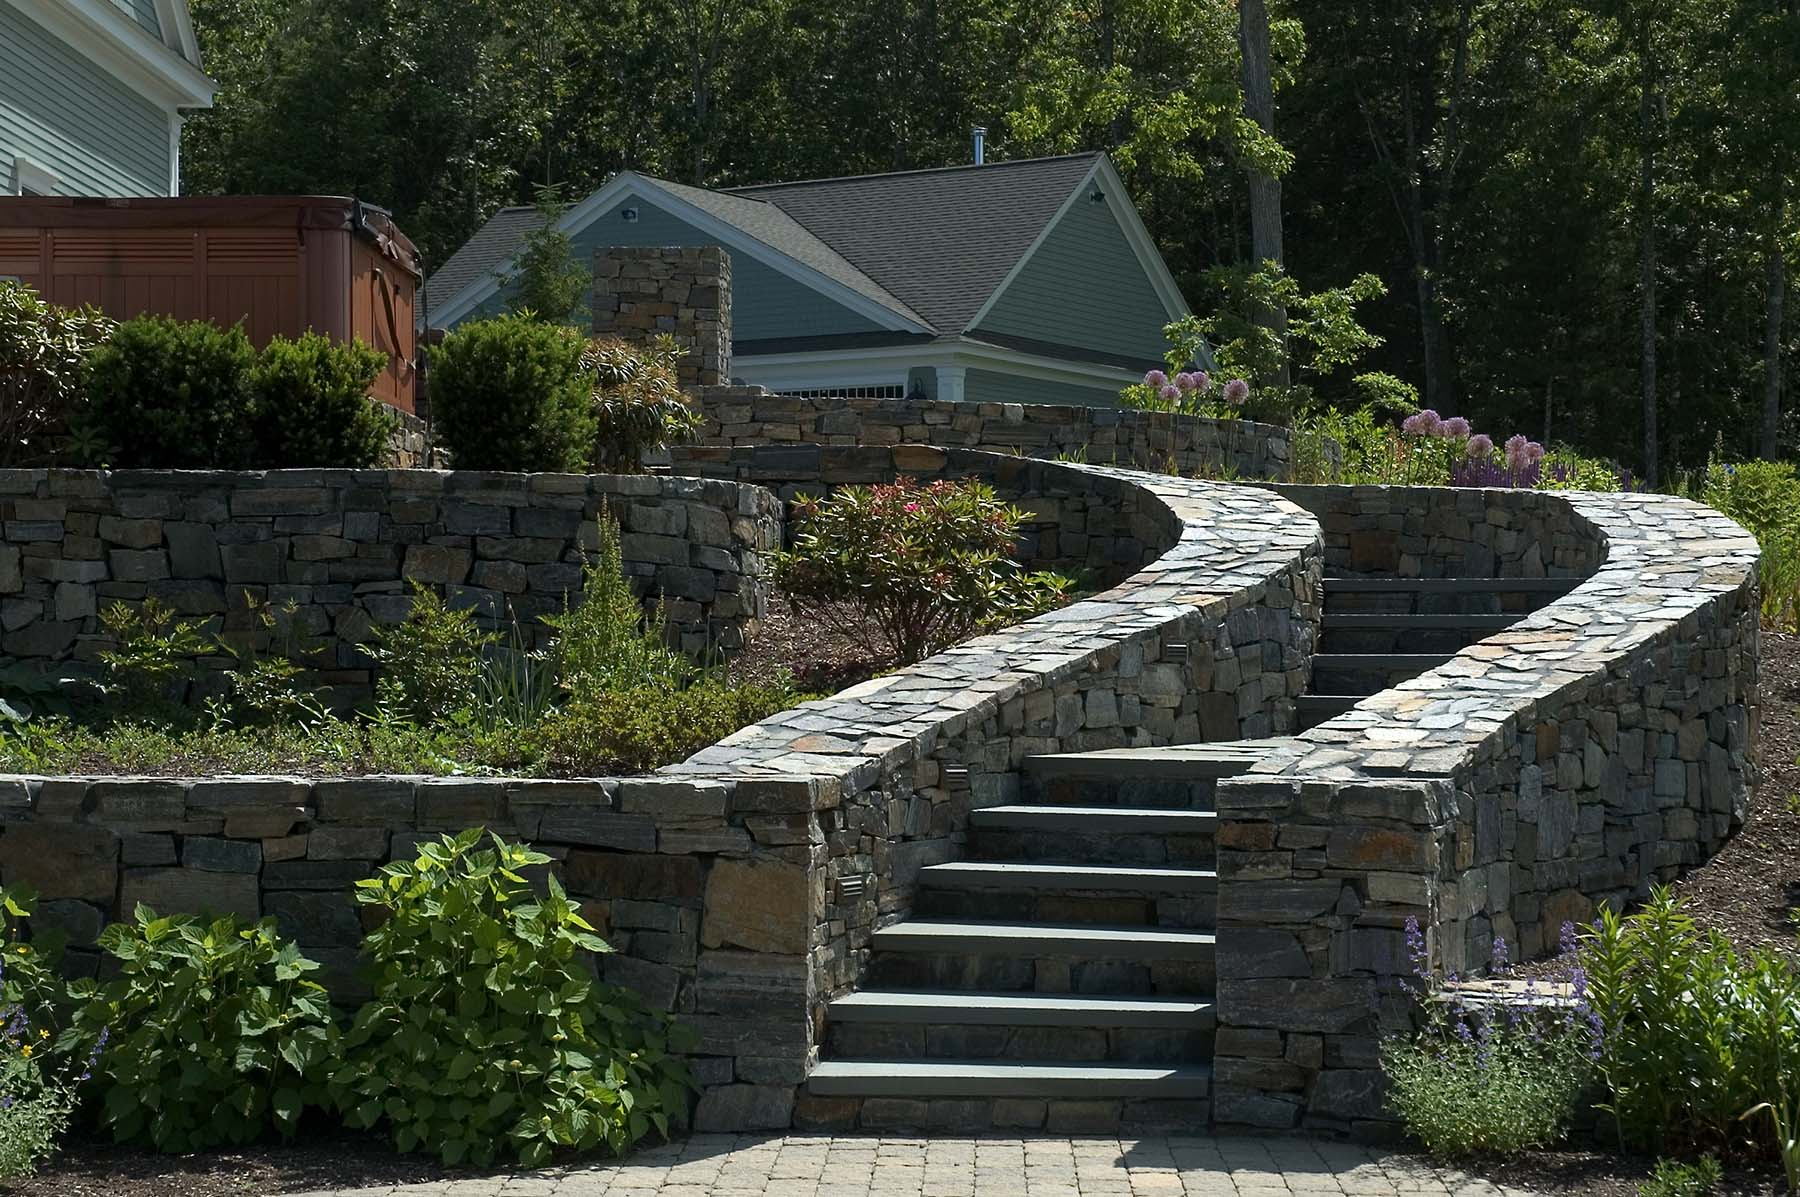 saratoga granite mosaic natural stone retaining wall and stairs outside residential home